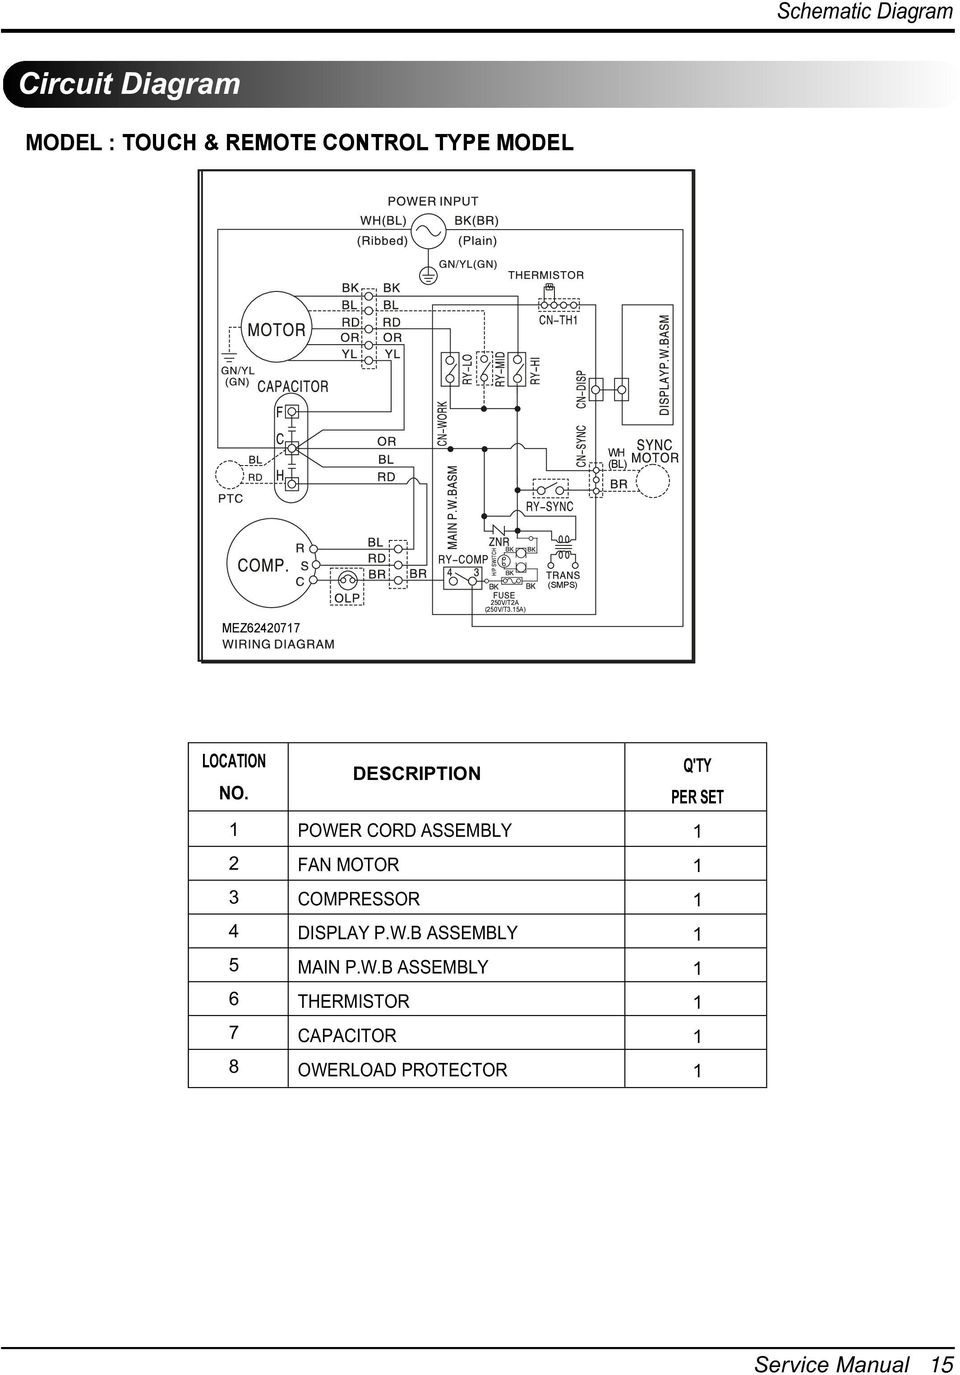 Room Air Conditioner Service And Parts Manual Pdf Oscillating Fan Wire Diagram 3 1 2 4 5 6 7 8 Description Power Cord Assembly Motor Compressor Display